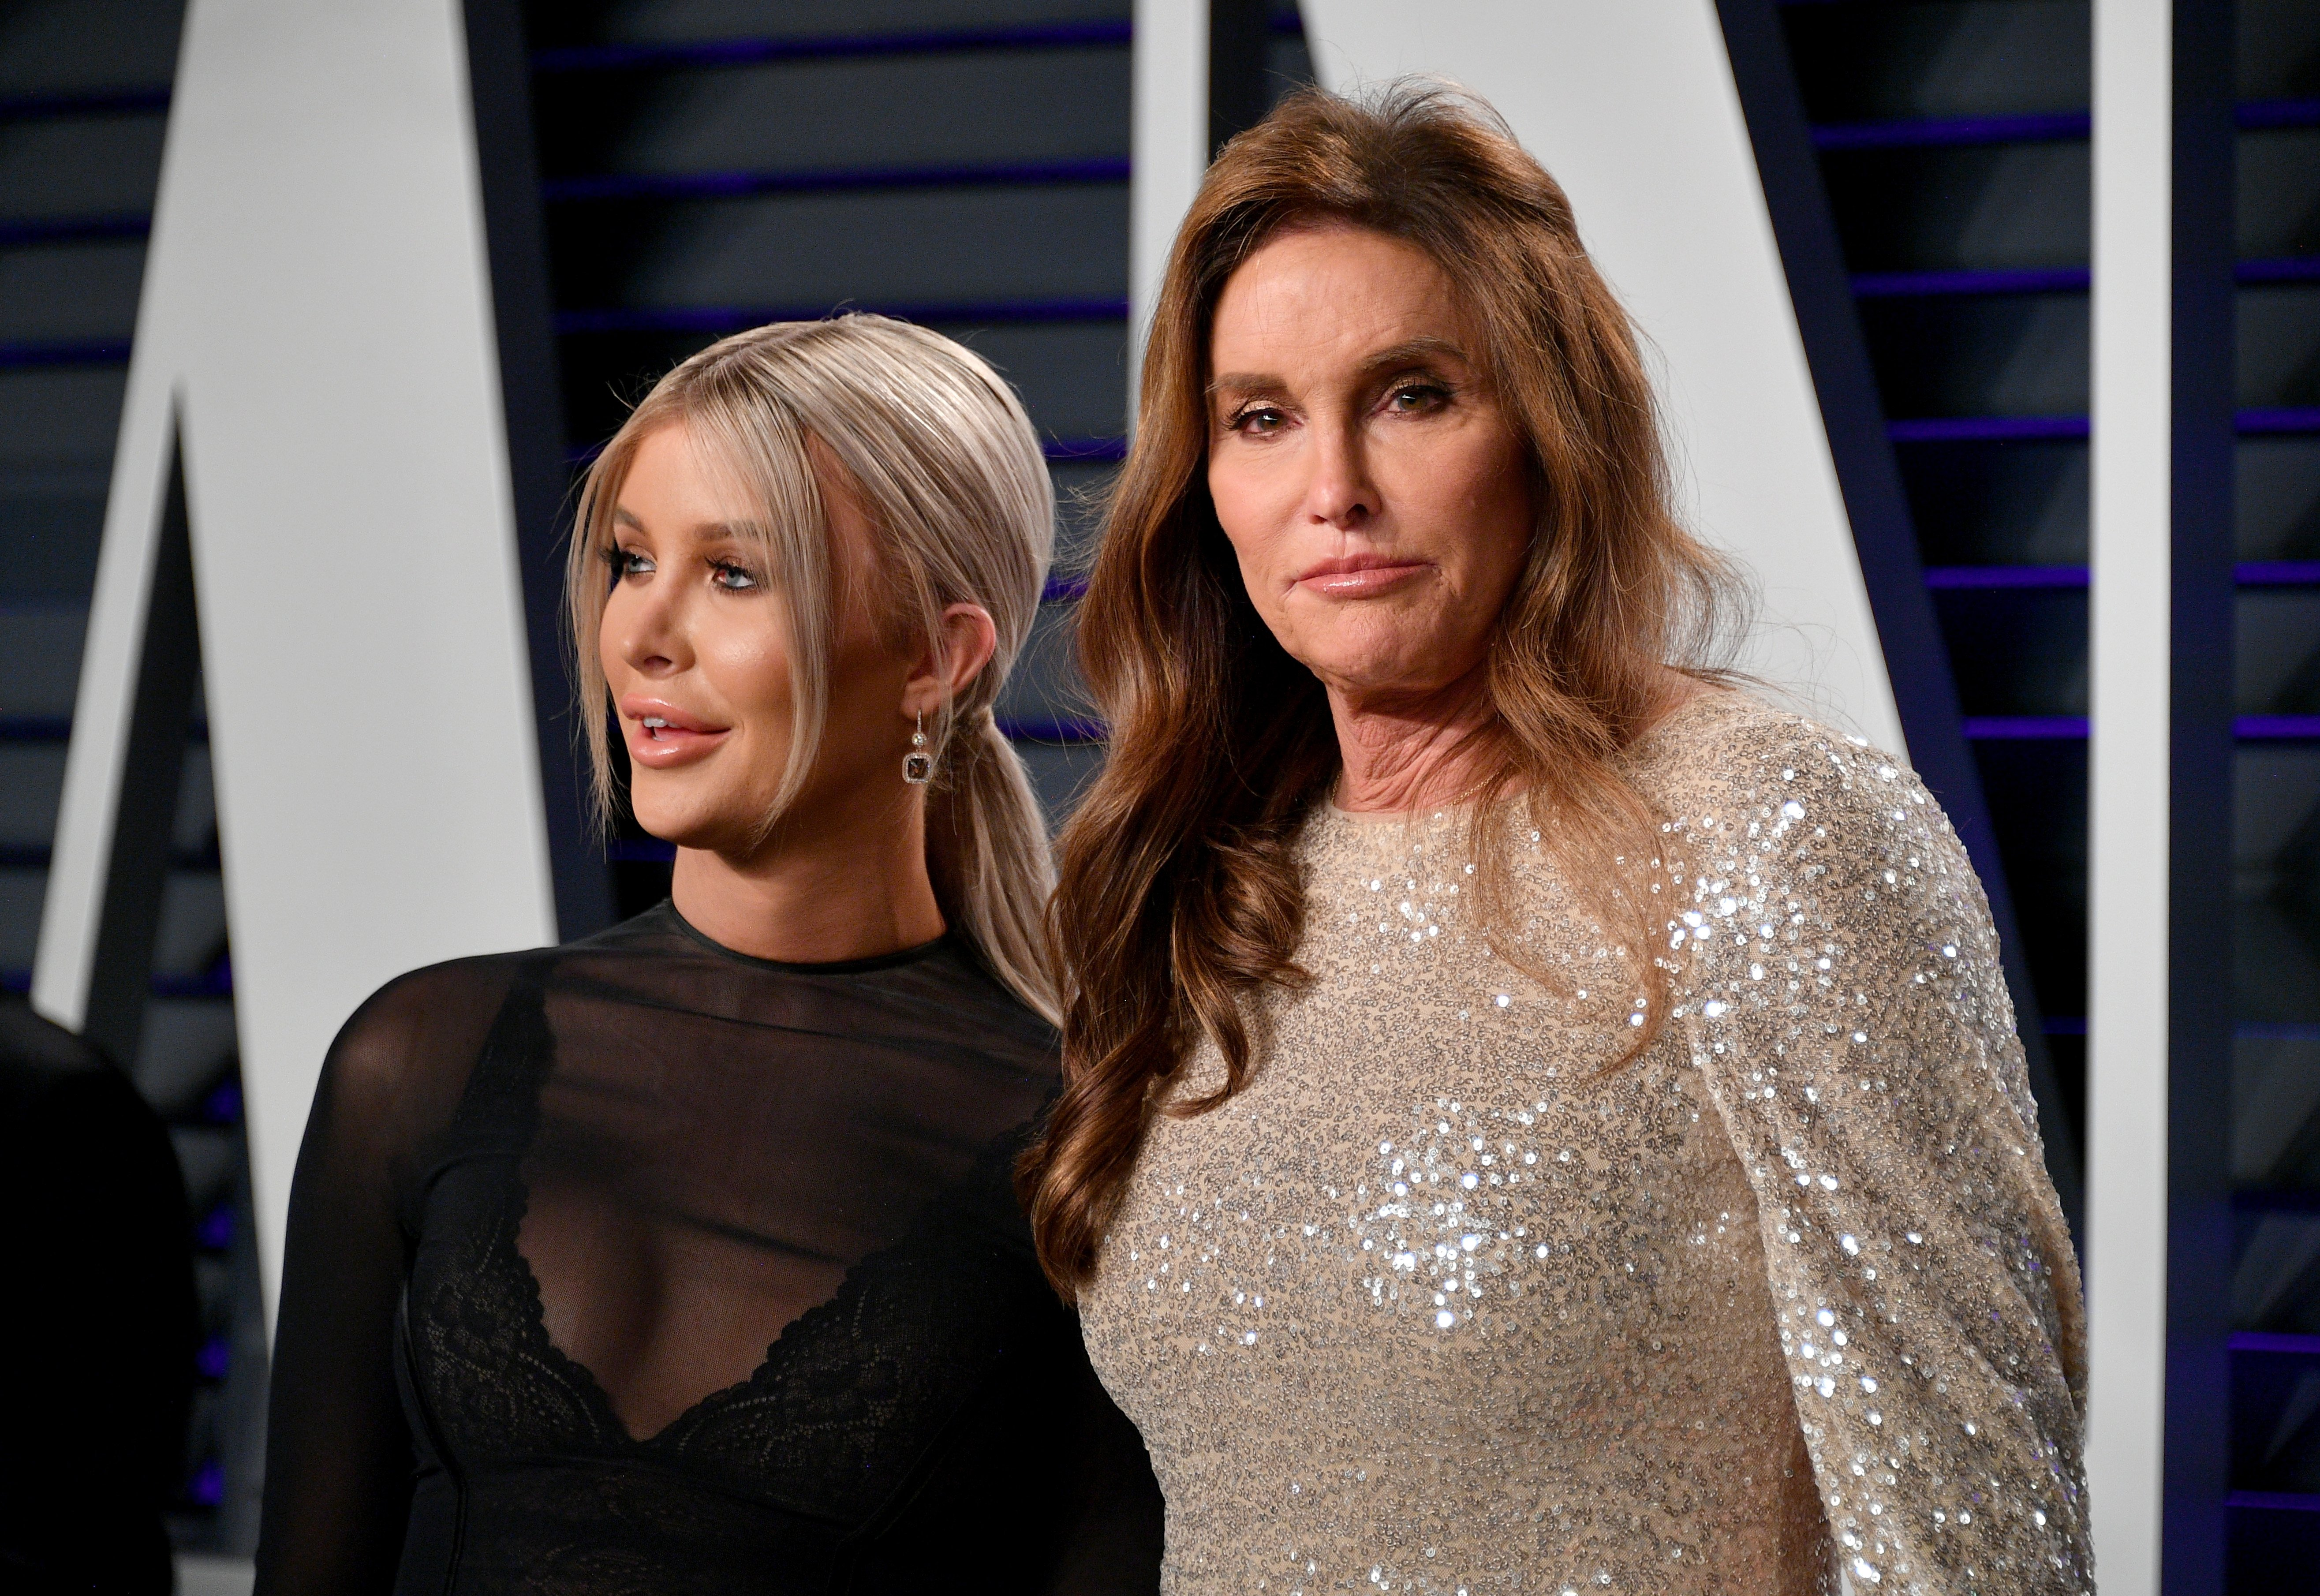 Caitlyn Jenner and Sophia Hutchins attends the 2019 Vanity Fair Oscar Party | Photo: Getty Images